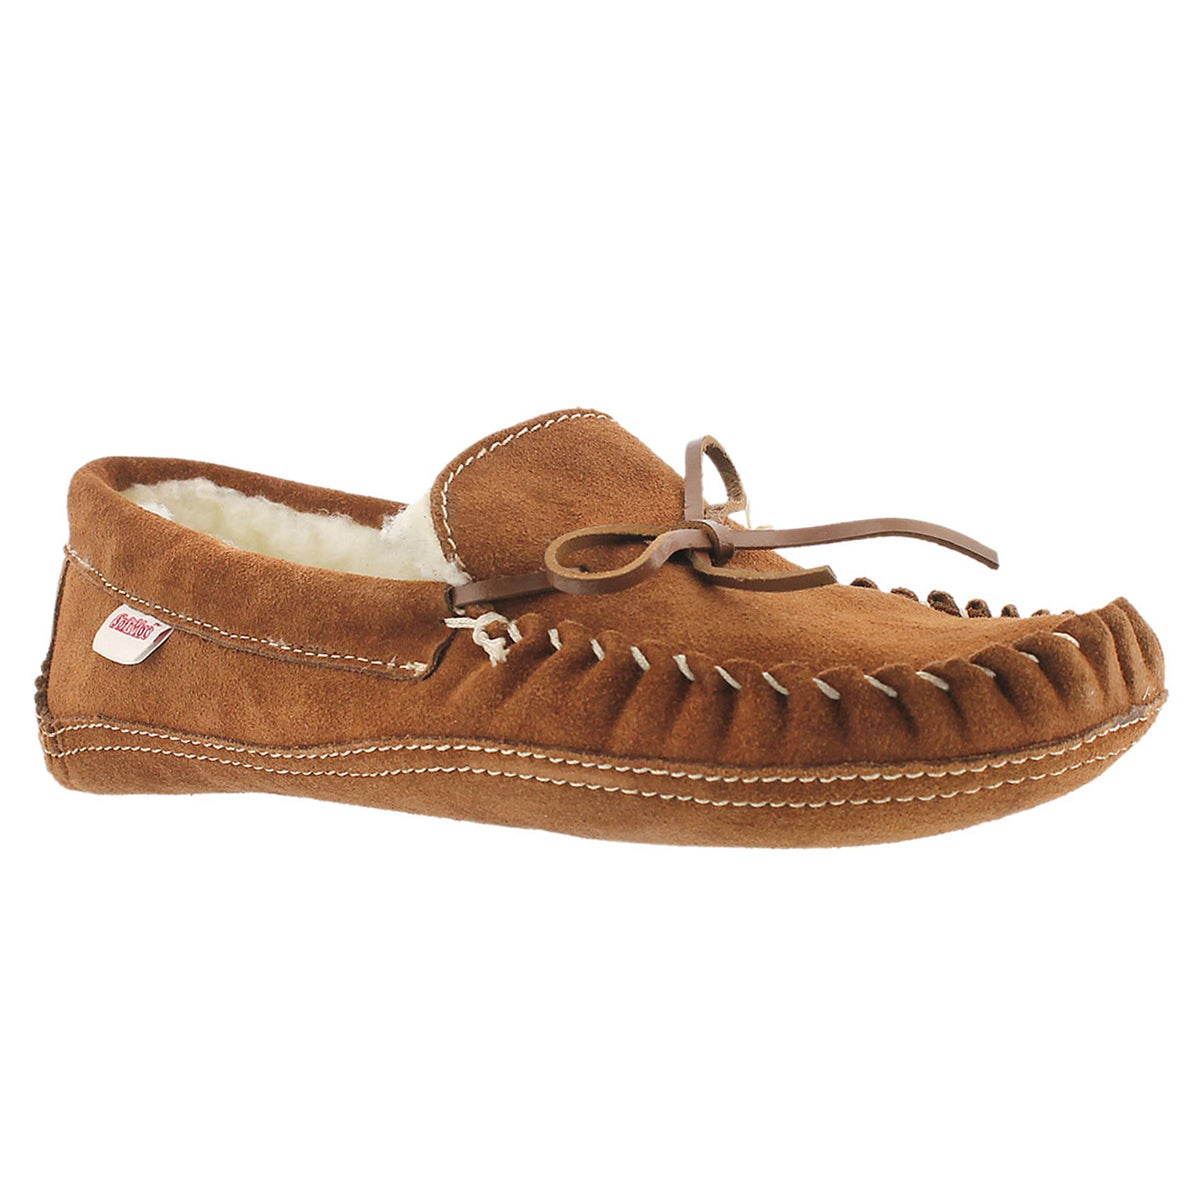 Mns mocha suede fur lined moccasin